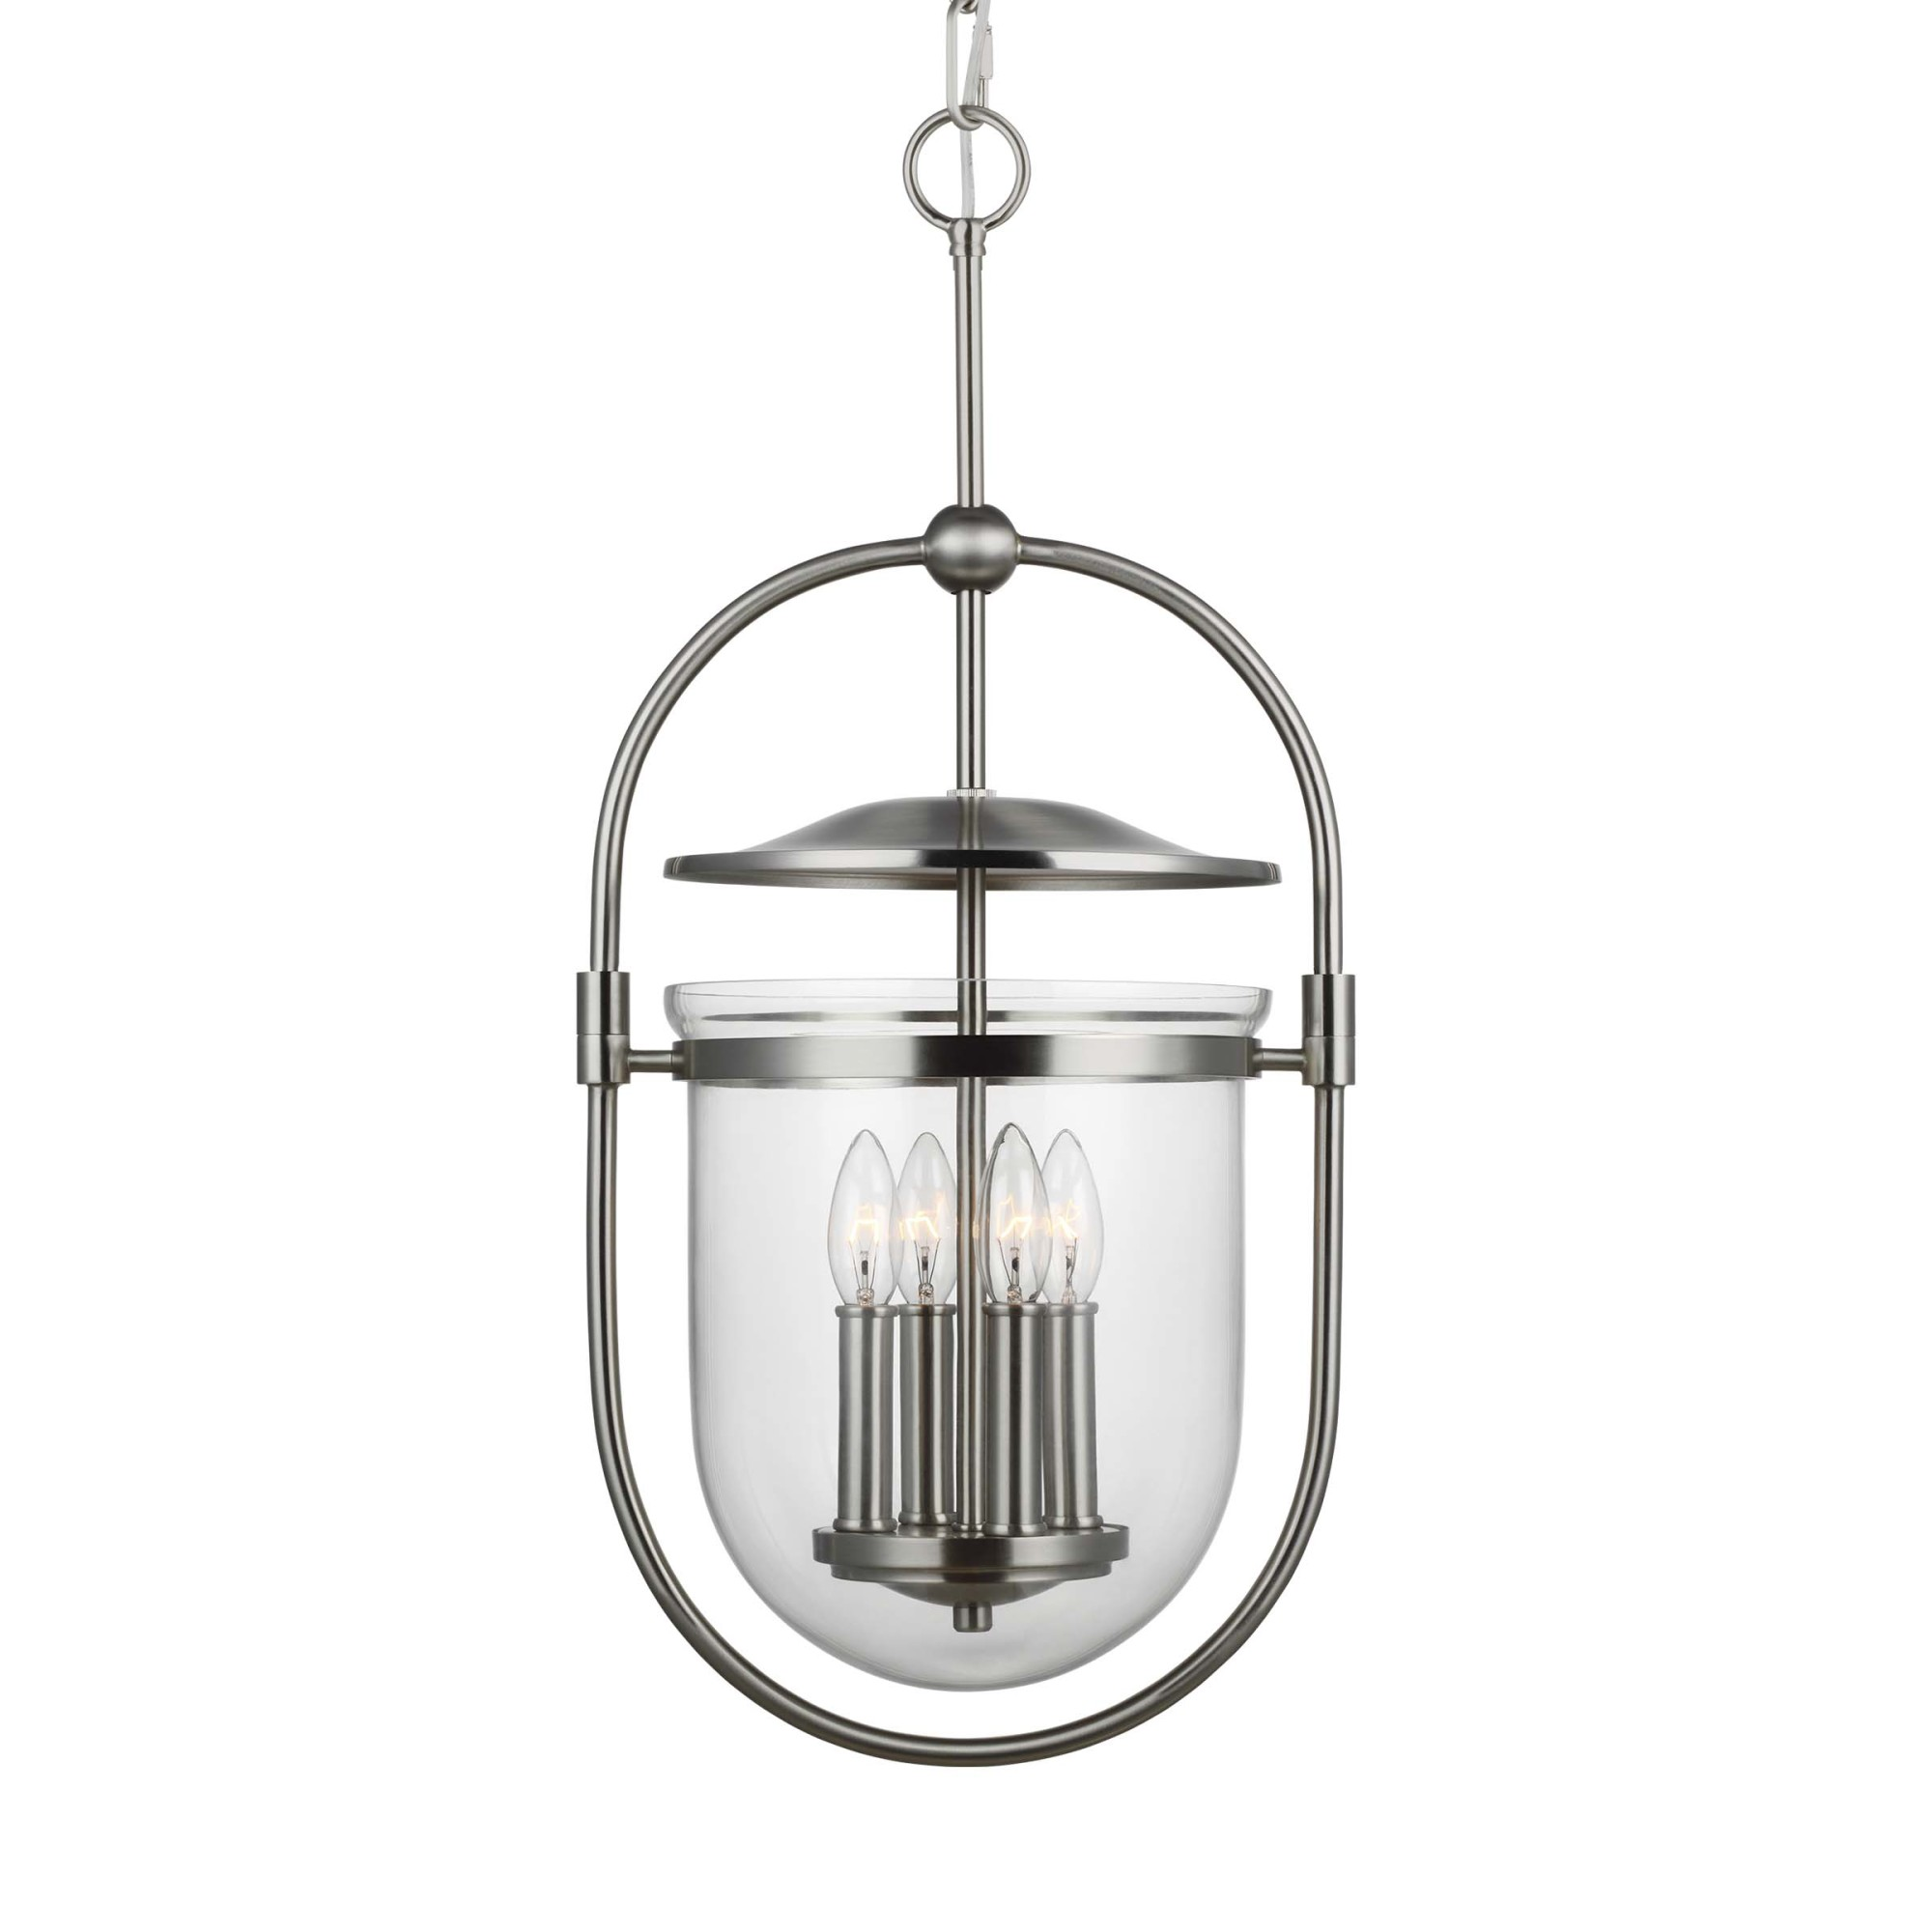 Details About Feiss P1488 Osborne 4 Light 13 W Taper Candle Pendant Nickel